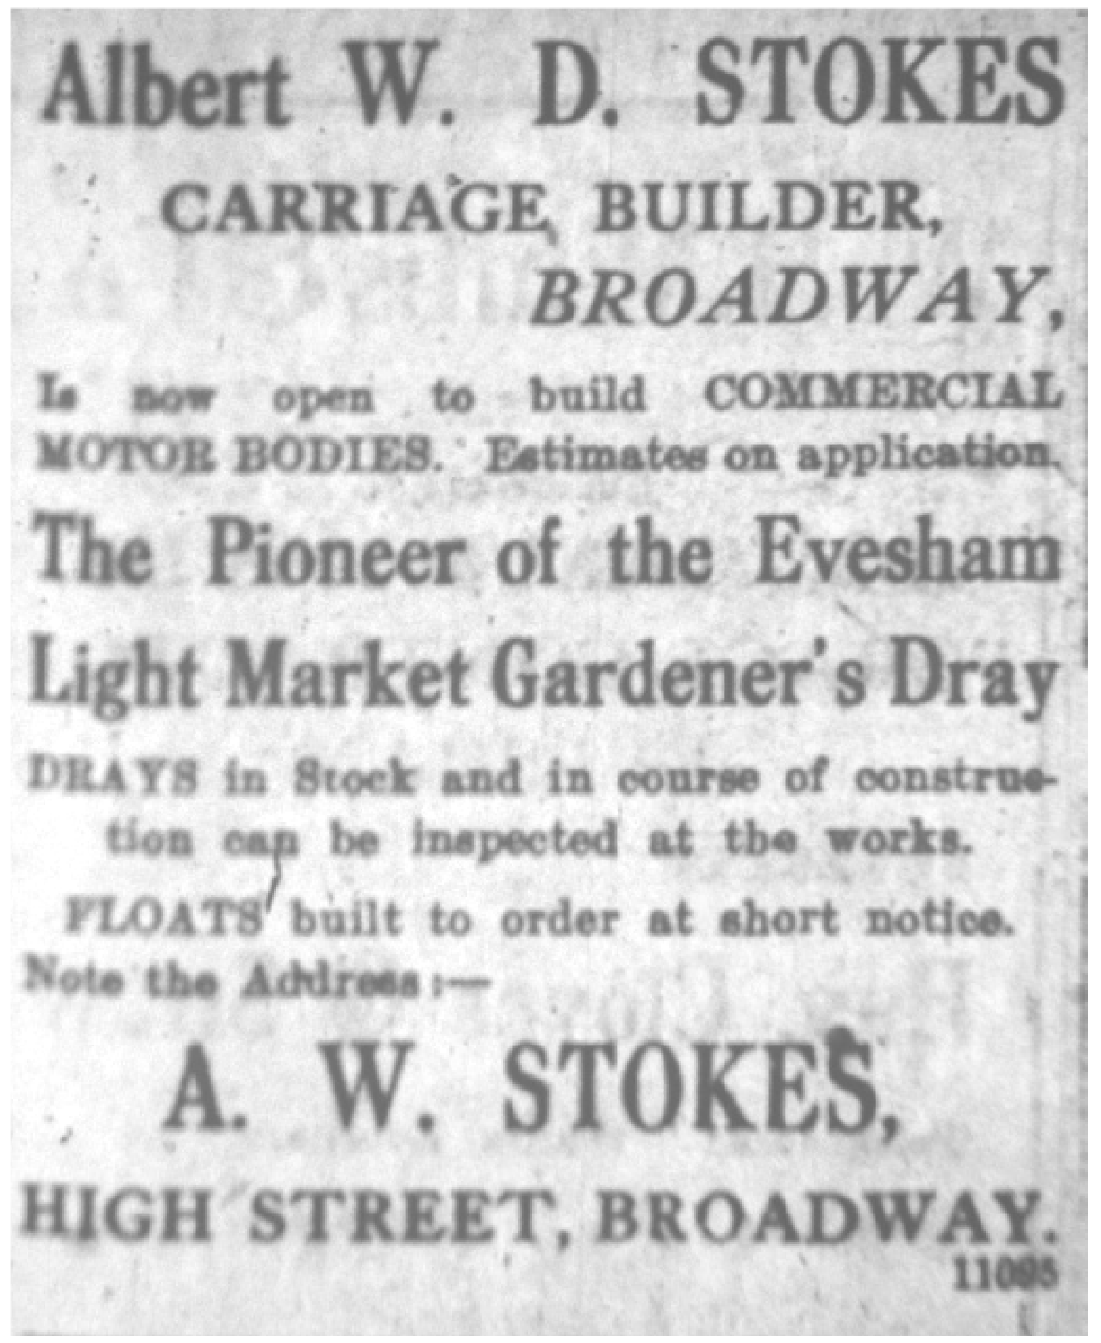 Advert for a carriage builder